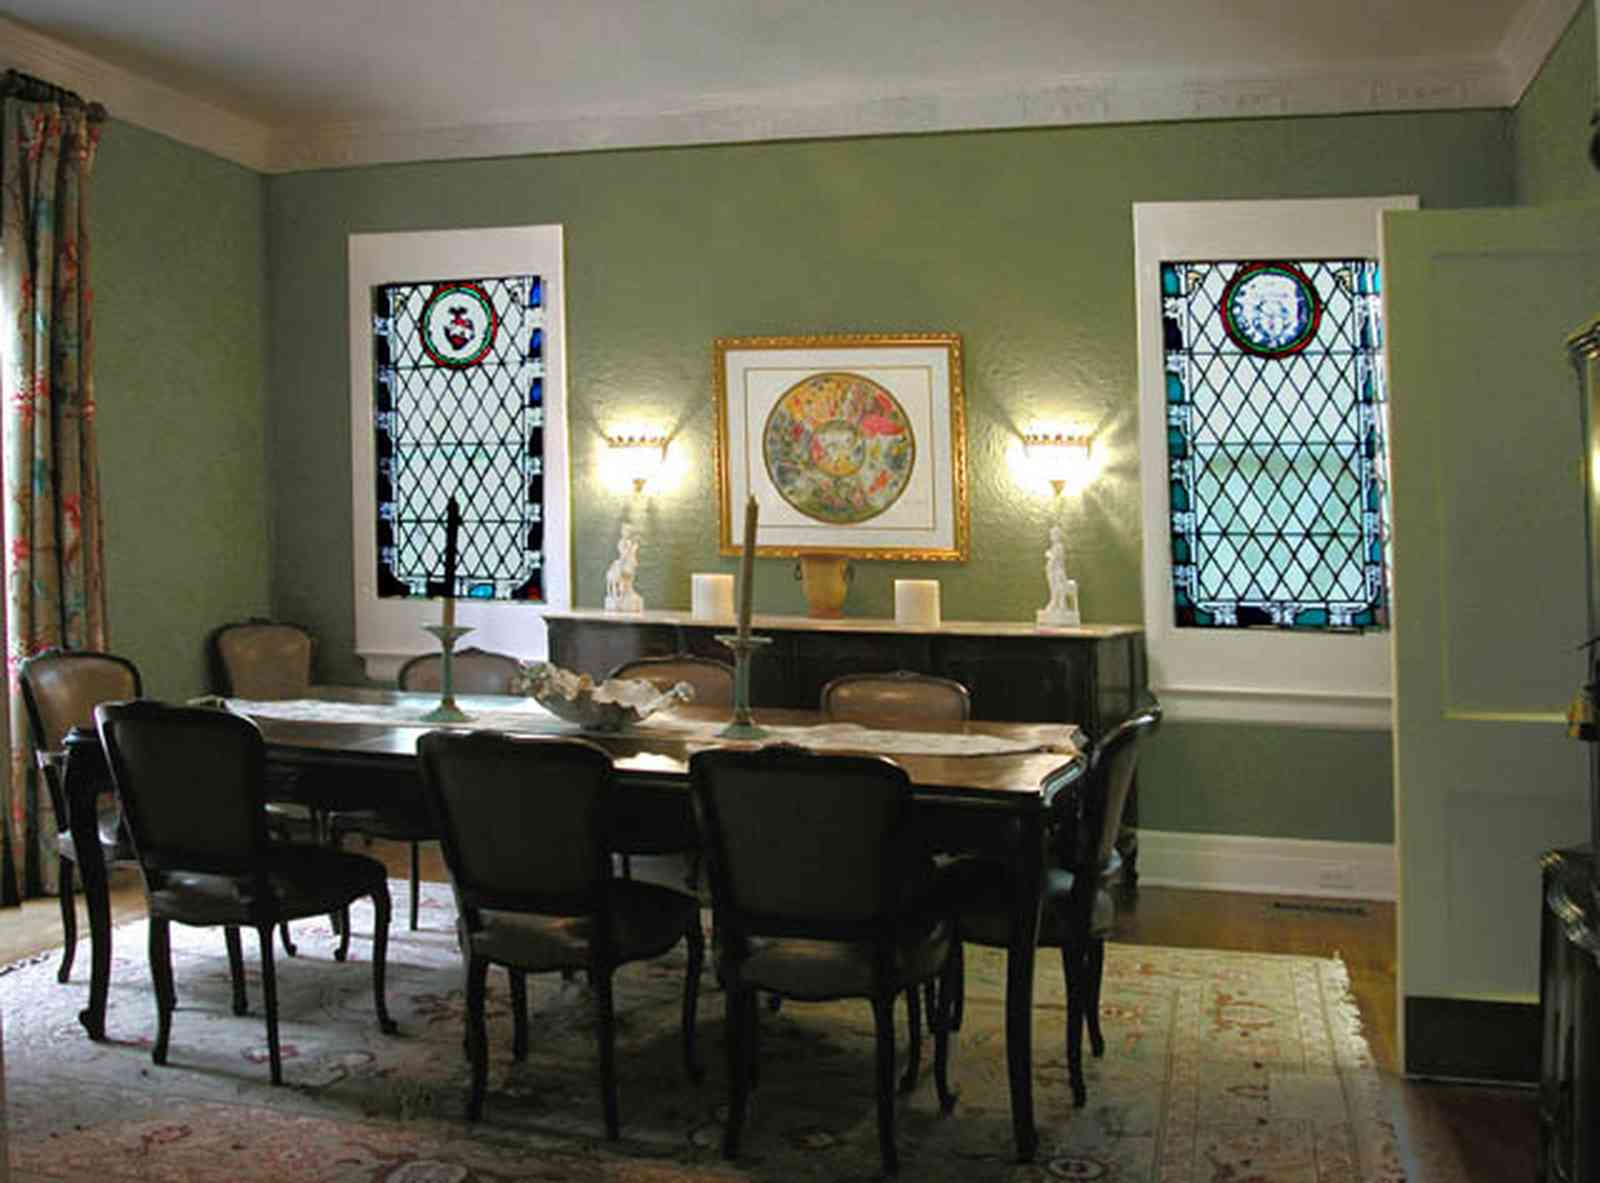 North-Hill:-123-West-Lloyd-Street_15.jpg:  dining room, stained glass windows, oriental rug, swinging door, drapes, front room, italienate architecture